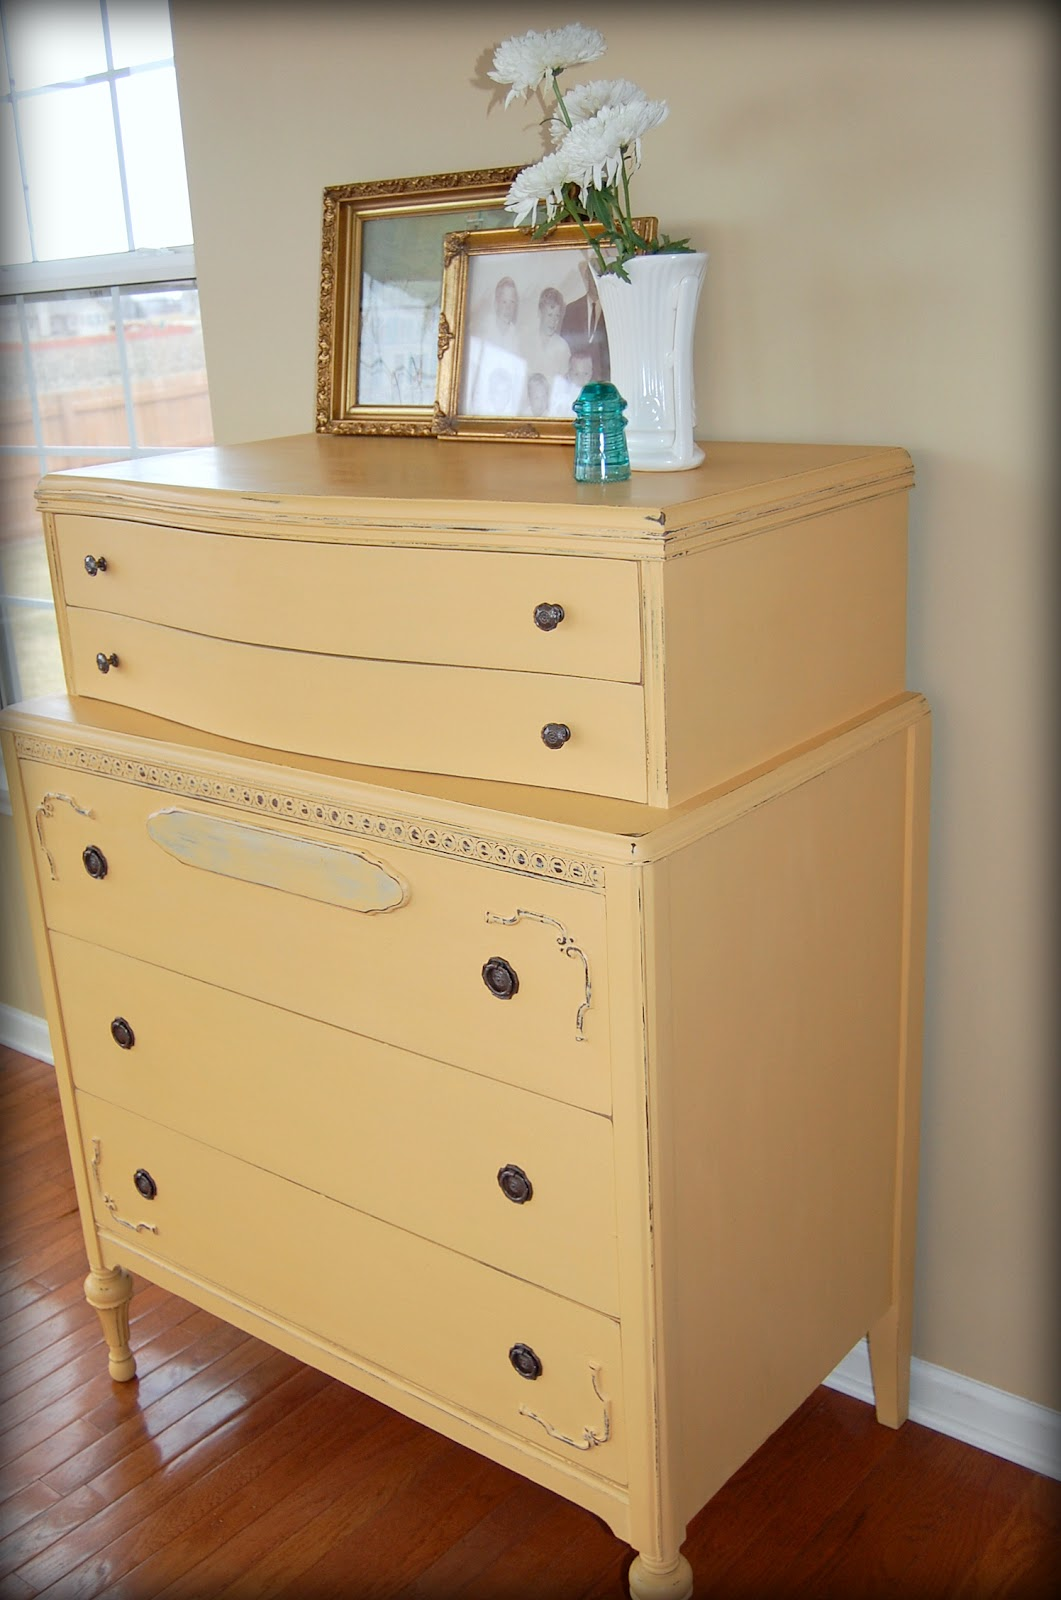 Shades Of Amber Chalk Paint Color Theory Arles: best color to paint dresser